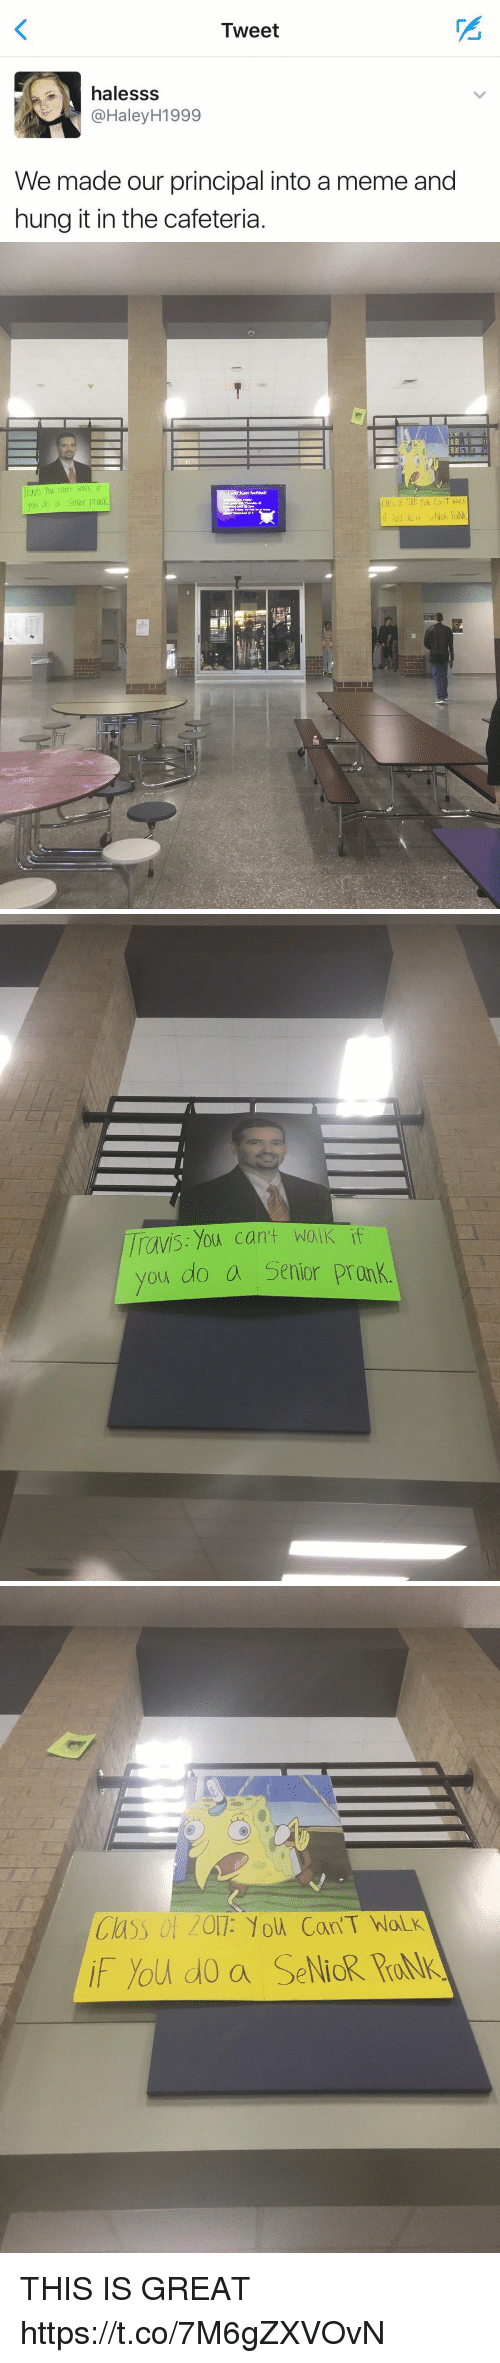 Meme, Prank, and Principal: Tweet  halesss  @Haley H1999  We made our principal into a meme and  hung it in the cafeteria   can't walk if  you do a Senior Prank.  Kats Softball  if you do a SelicR PaNg   Travis: You can't walk i  you do a Senior Pronk.   Class of 2011: 10W ConT Nolk  you do a SelicR Pro THIS IS GREAT https://t.co/7M6gZXVOvN